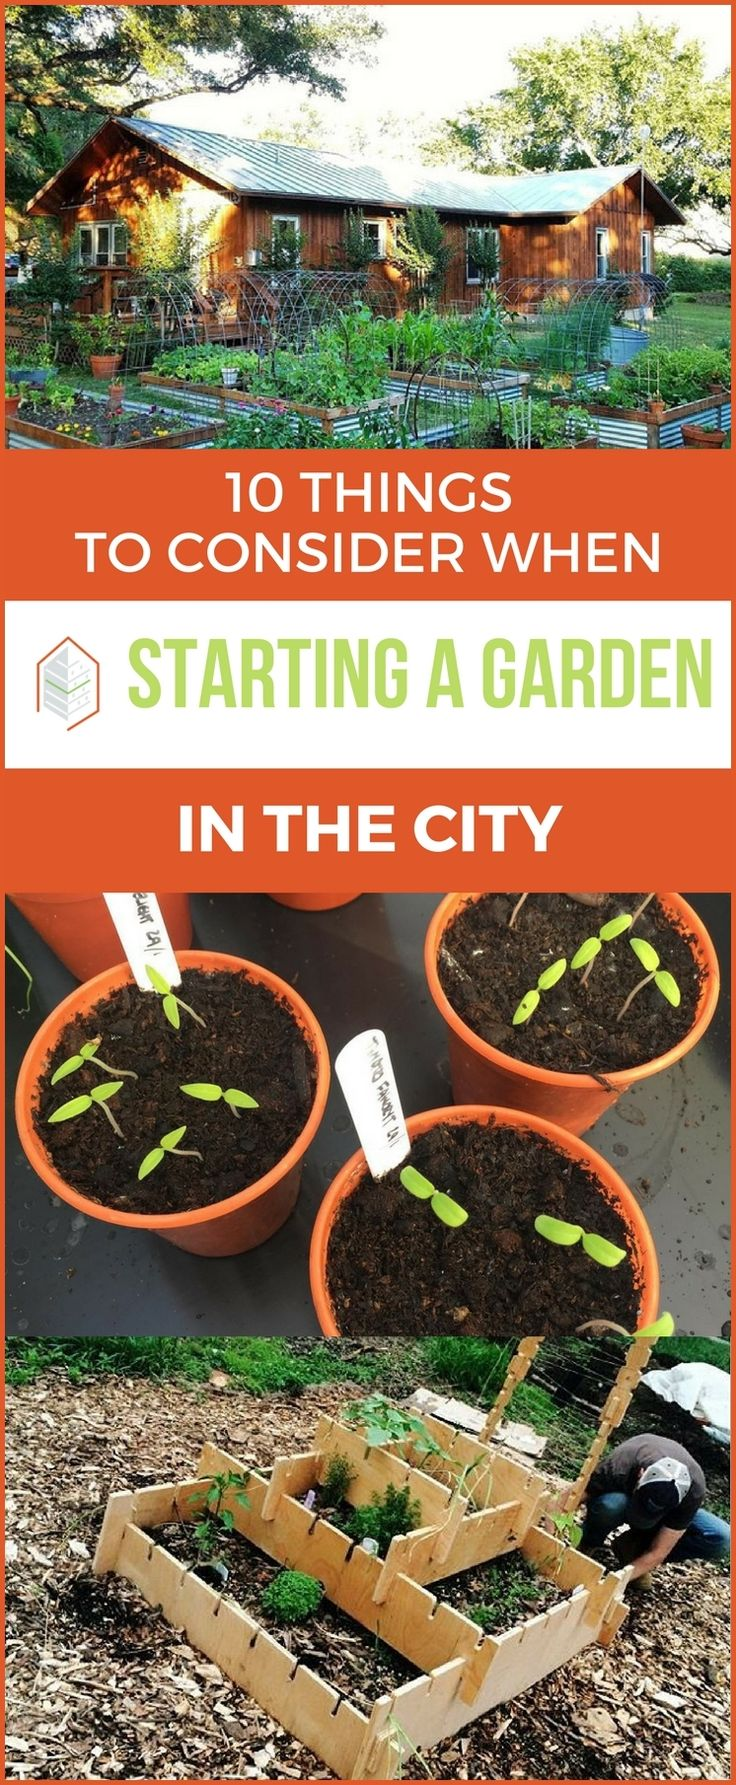 Starting a Garden in the City: 10 Things to Consider. Starting a garden in the city? Urban gardening needs planning, creativity and effective use of available space. 10 tips to guide you on how to do so. #urbangardening #urbanfarming #gardening #diy #gard